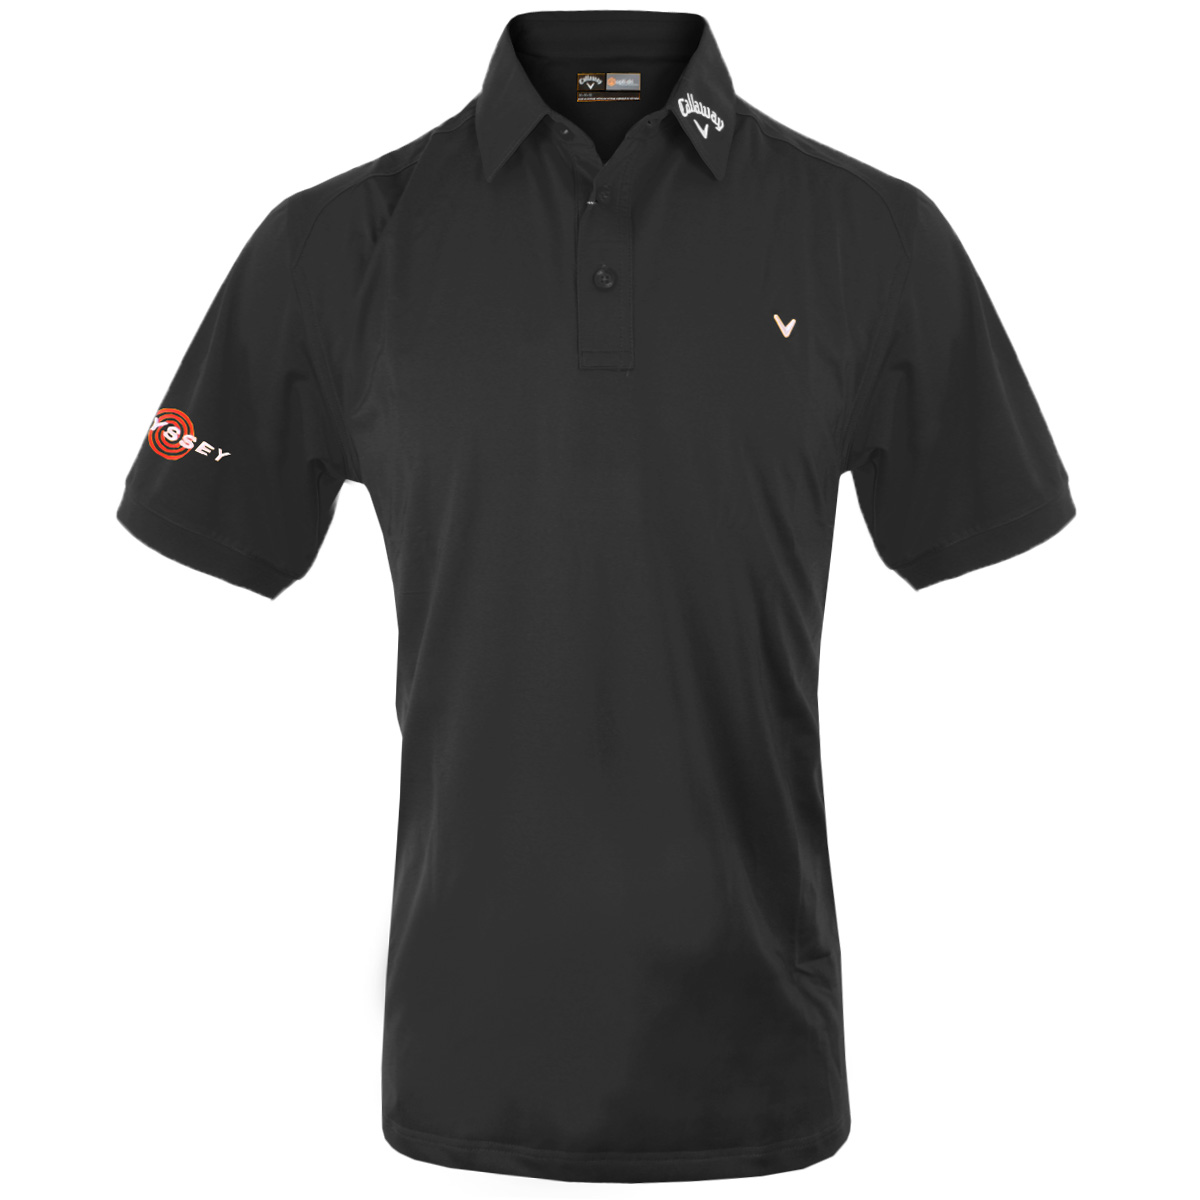 Callaway golf 2015 mens stretch solid ventilated tour for Polo shirts with logos